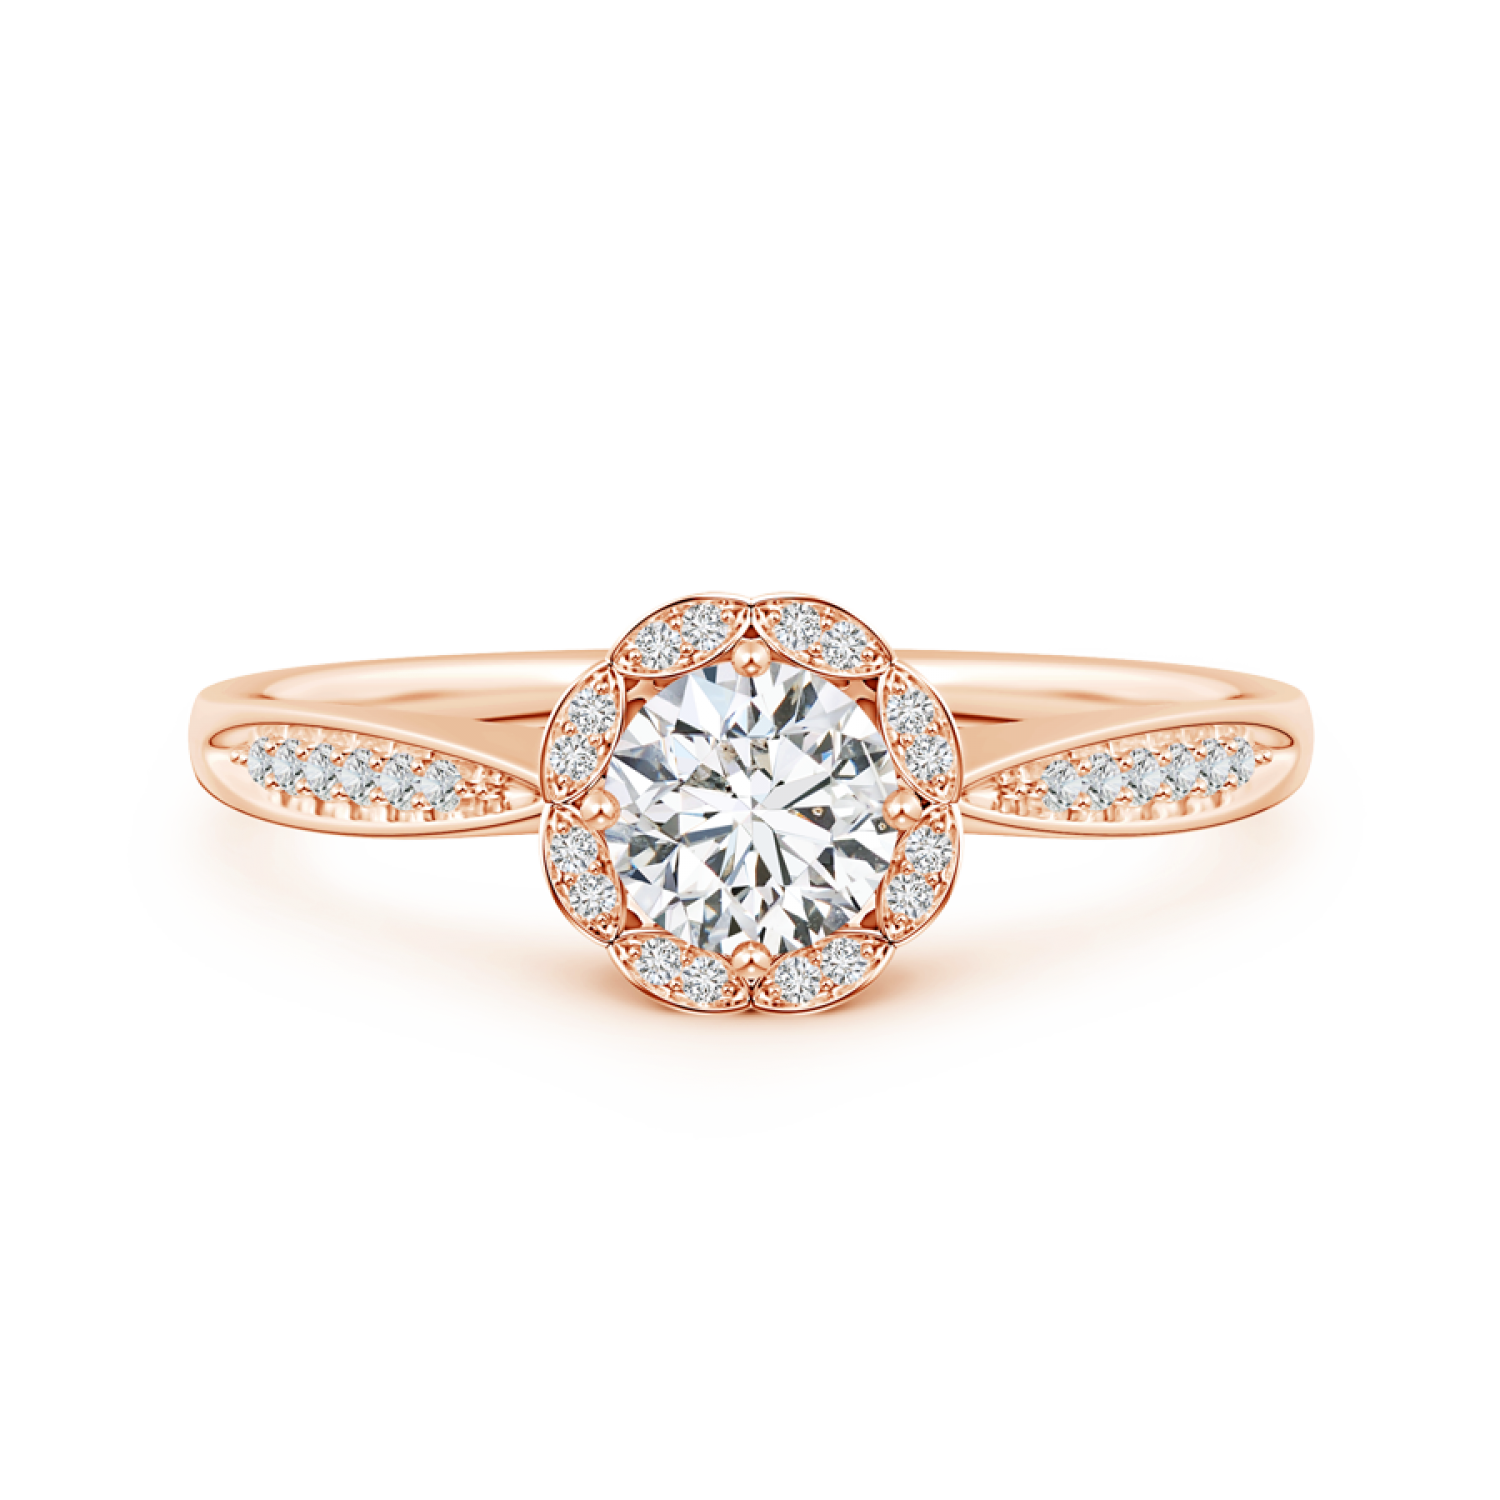 Round Lab Grown Diamond Scalloped Halo Ring with Leaf-Accents - Main Image